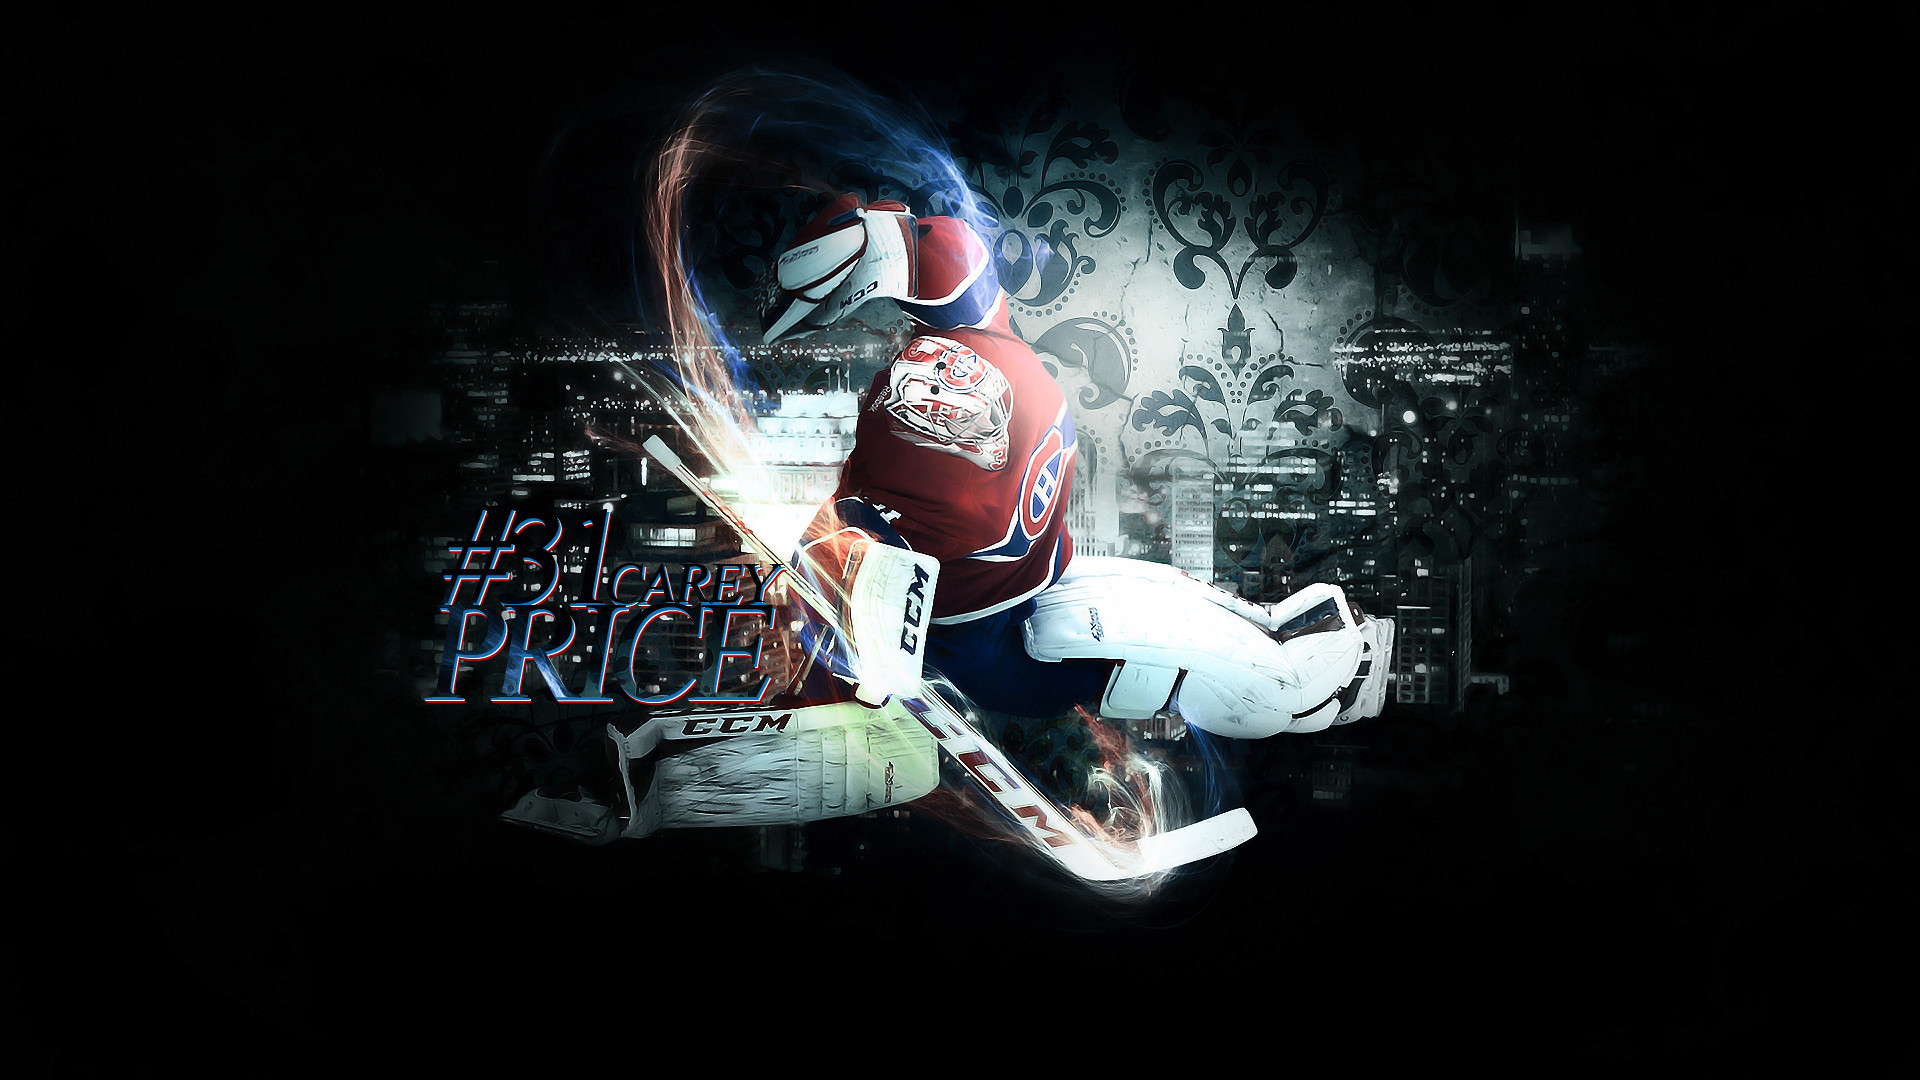 Daily hd wallpaper Carey Price Wallpaper I made for start of NHL 1920x1080